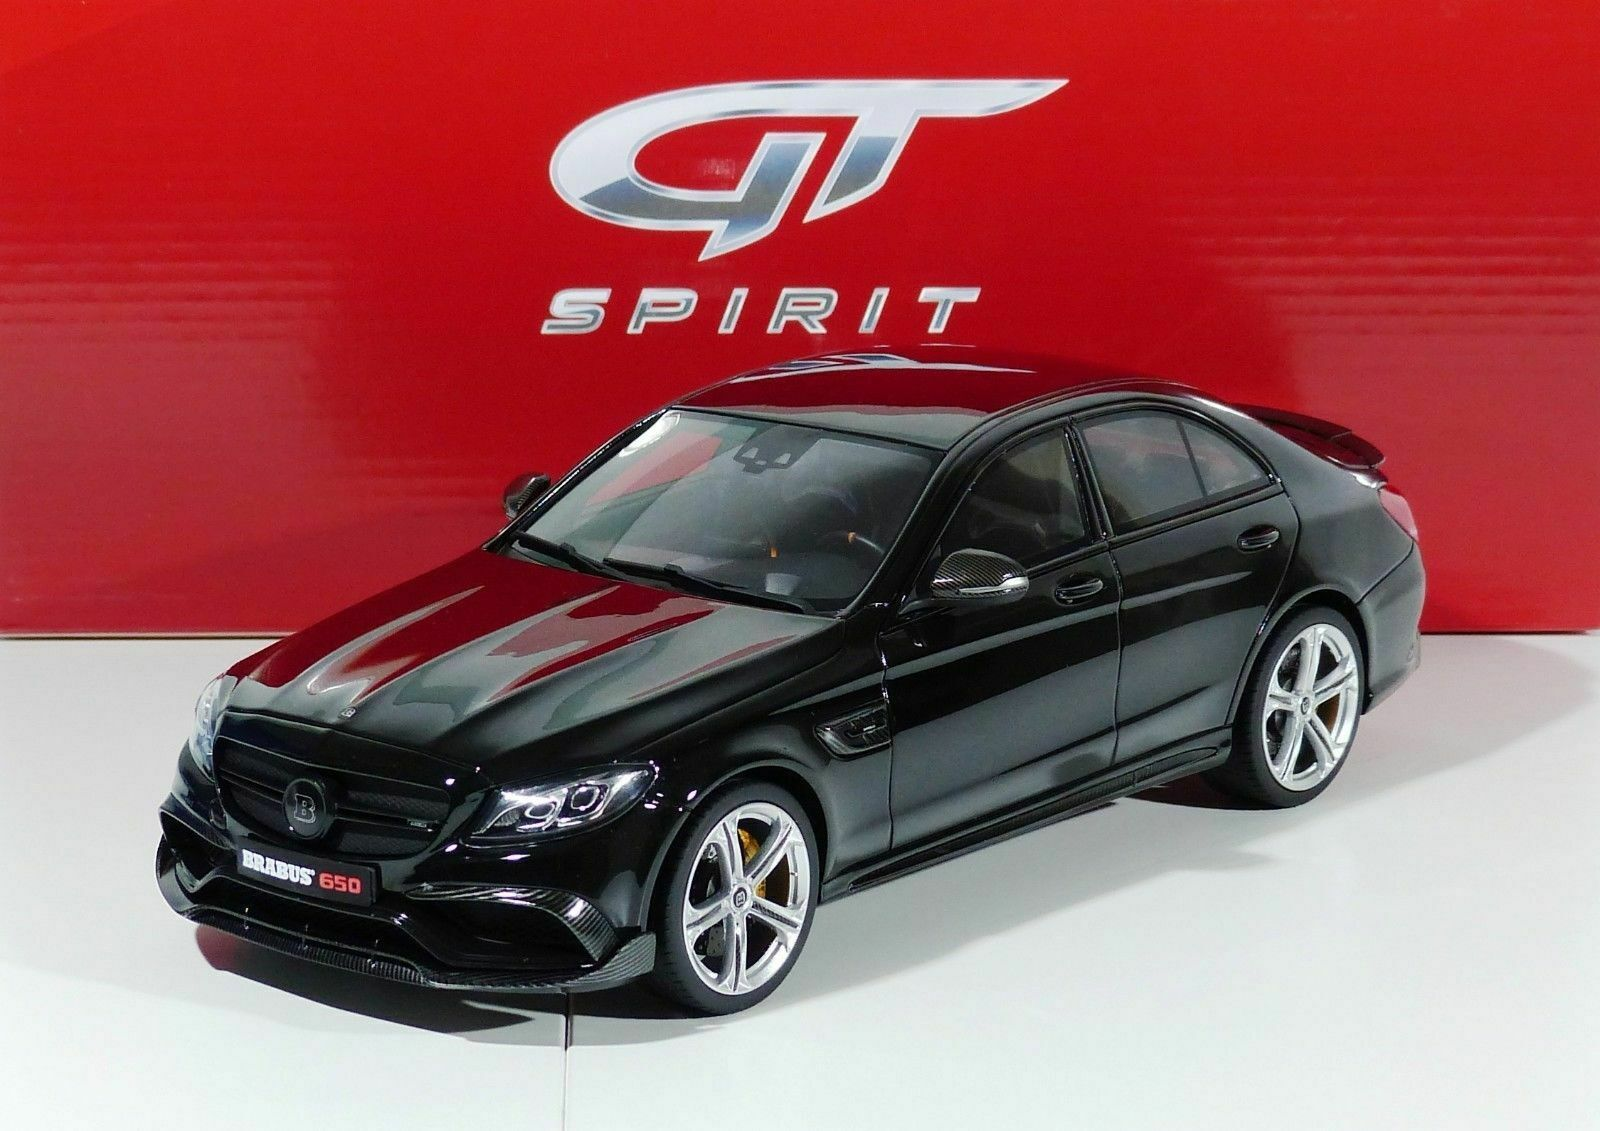 MERCEDES BRABUS 650 BITURBO C63 SEDAN  2016 GT132 GT SPIRIT LIMITED EDITION 1 18